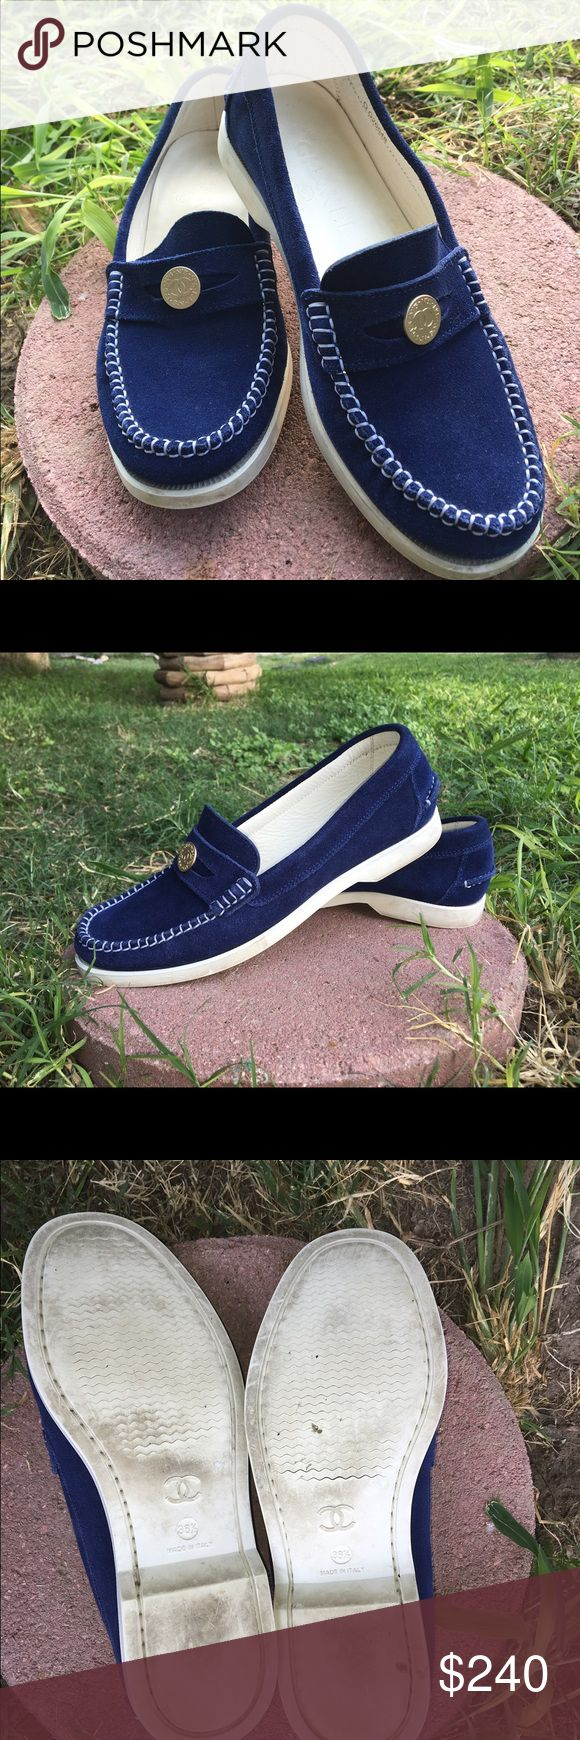 Chanel Blue Suede Loafers Chanel Blue Suede Loafers, in used condition as shown in picture. Still beautiful color to them!!! CHANEL Shoes Flats & Loafers